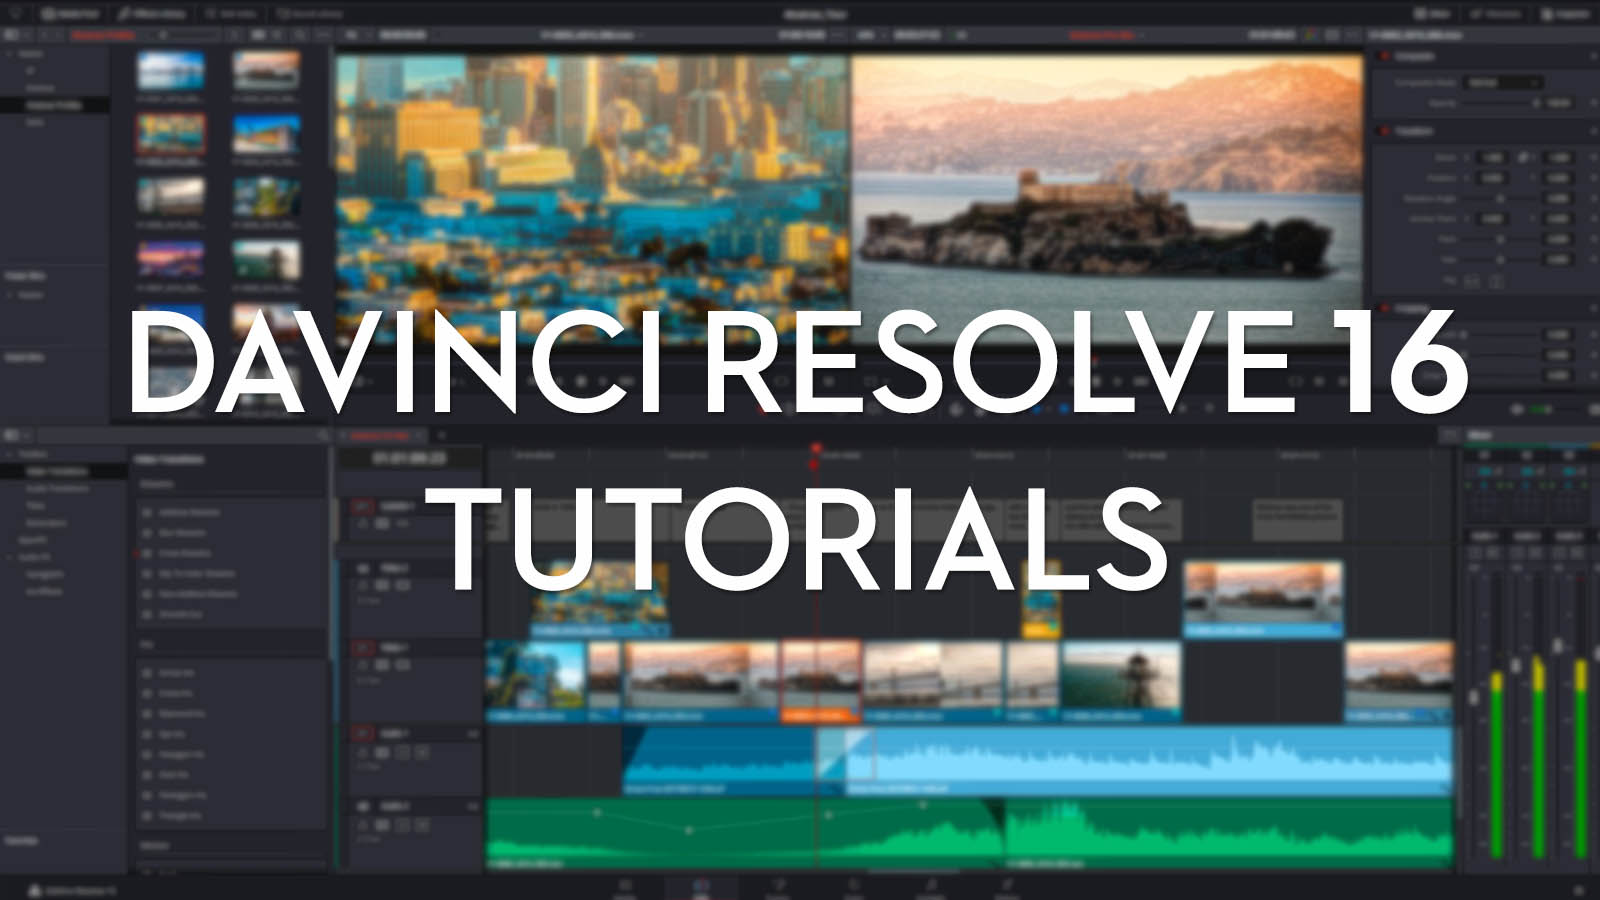 DaVinci Resolve 16 Tutorials and Training | Jonny Elwyn - Film Editor